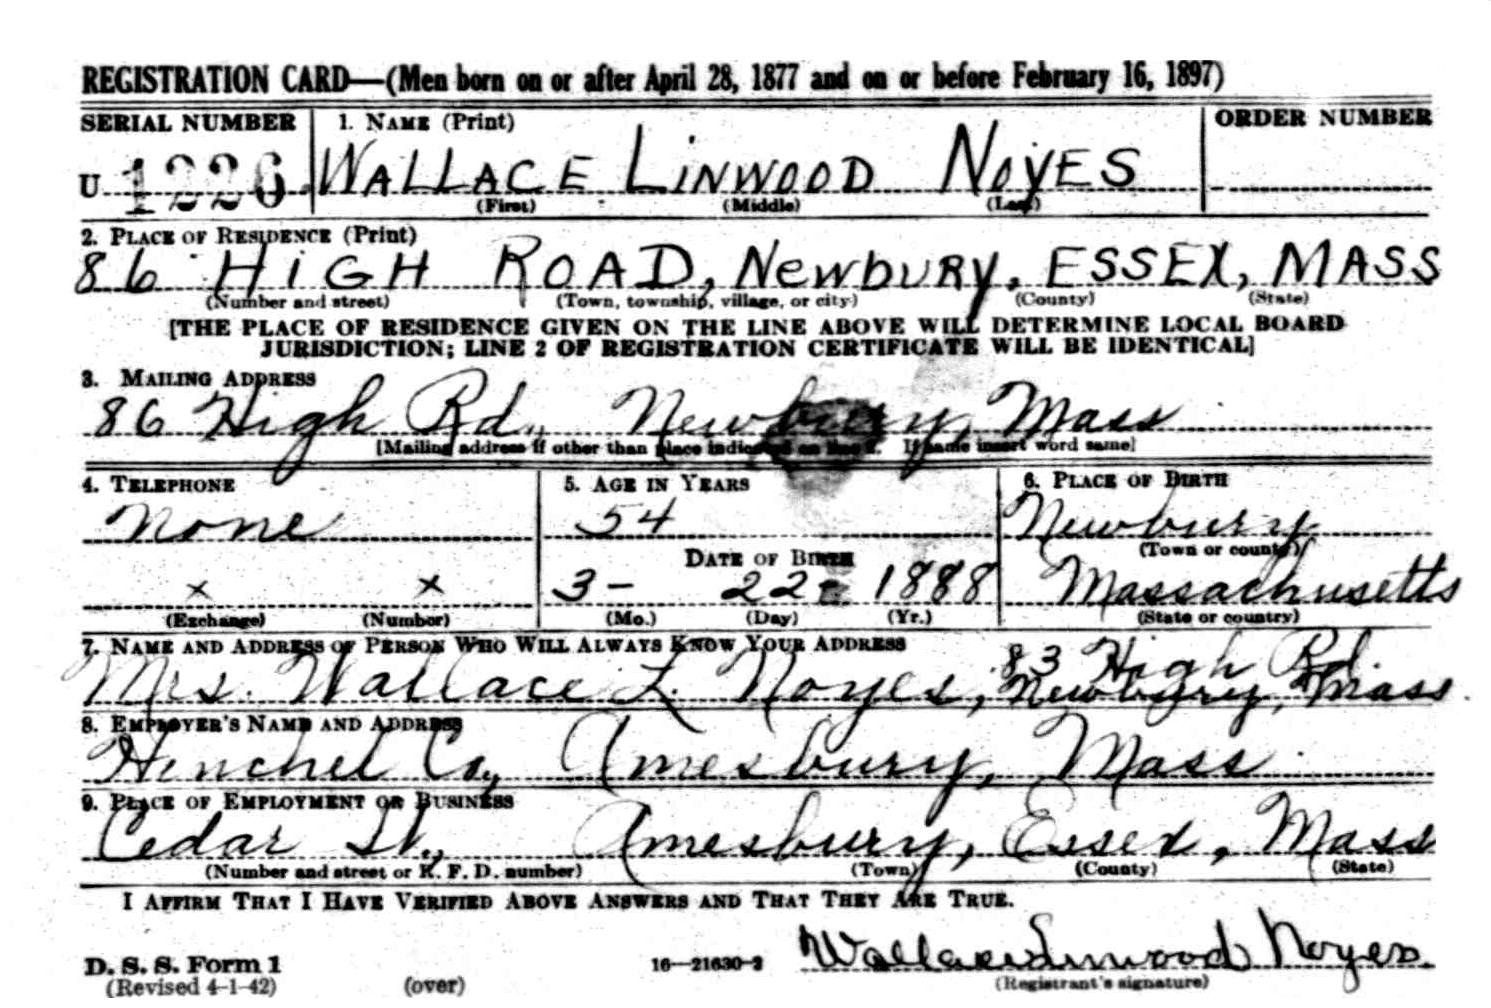 Wallace Linwood Noyes WWII Draft Registration Card